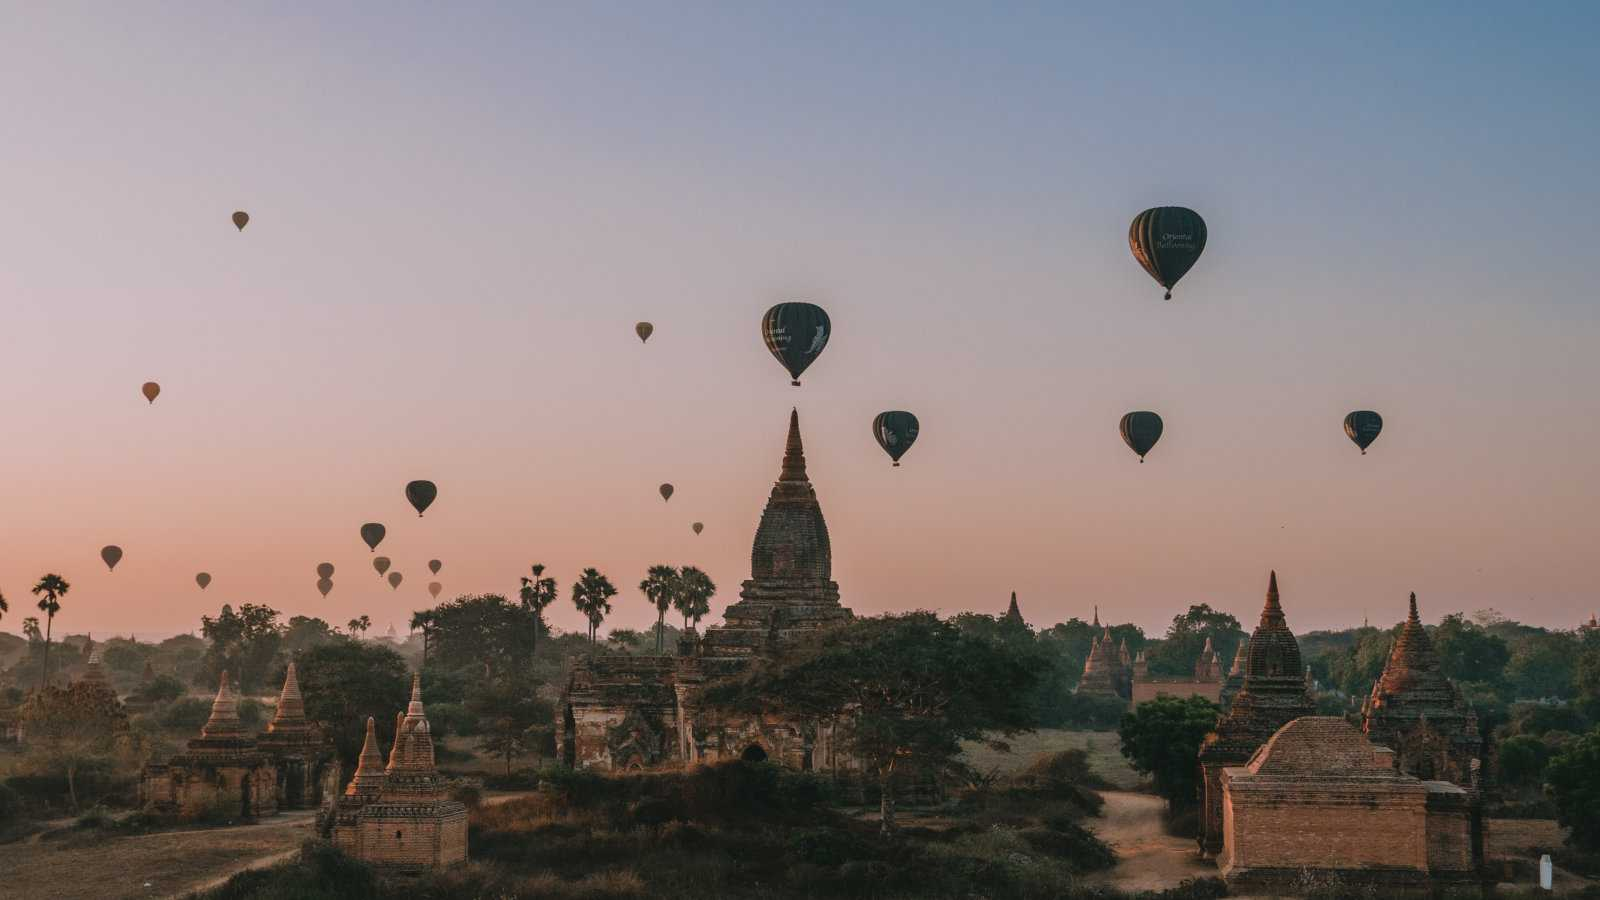 Find tours and activities to do in Bagan, Myanmar